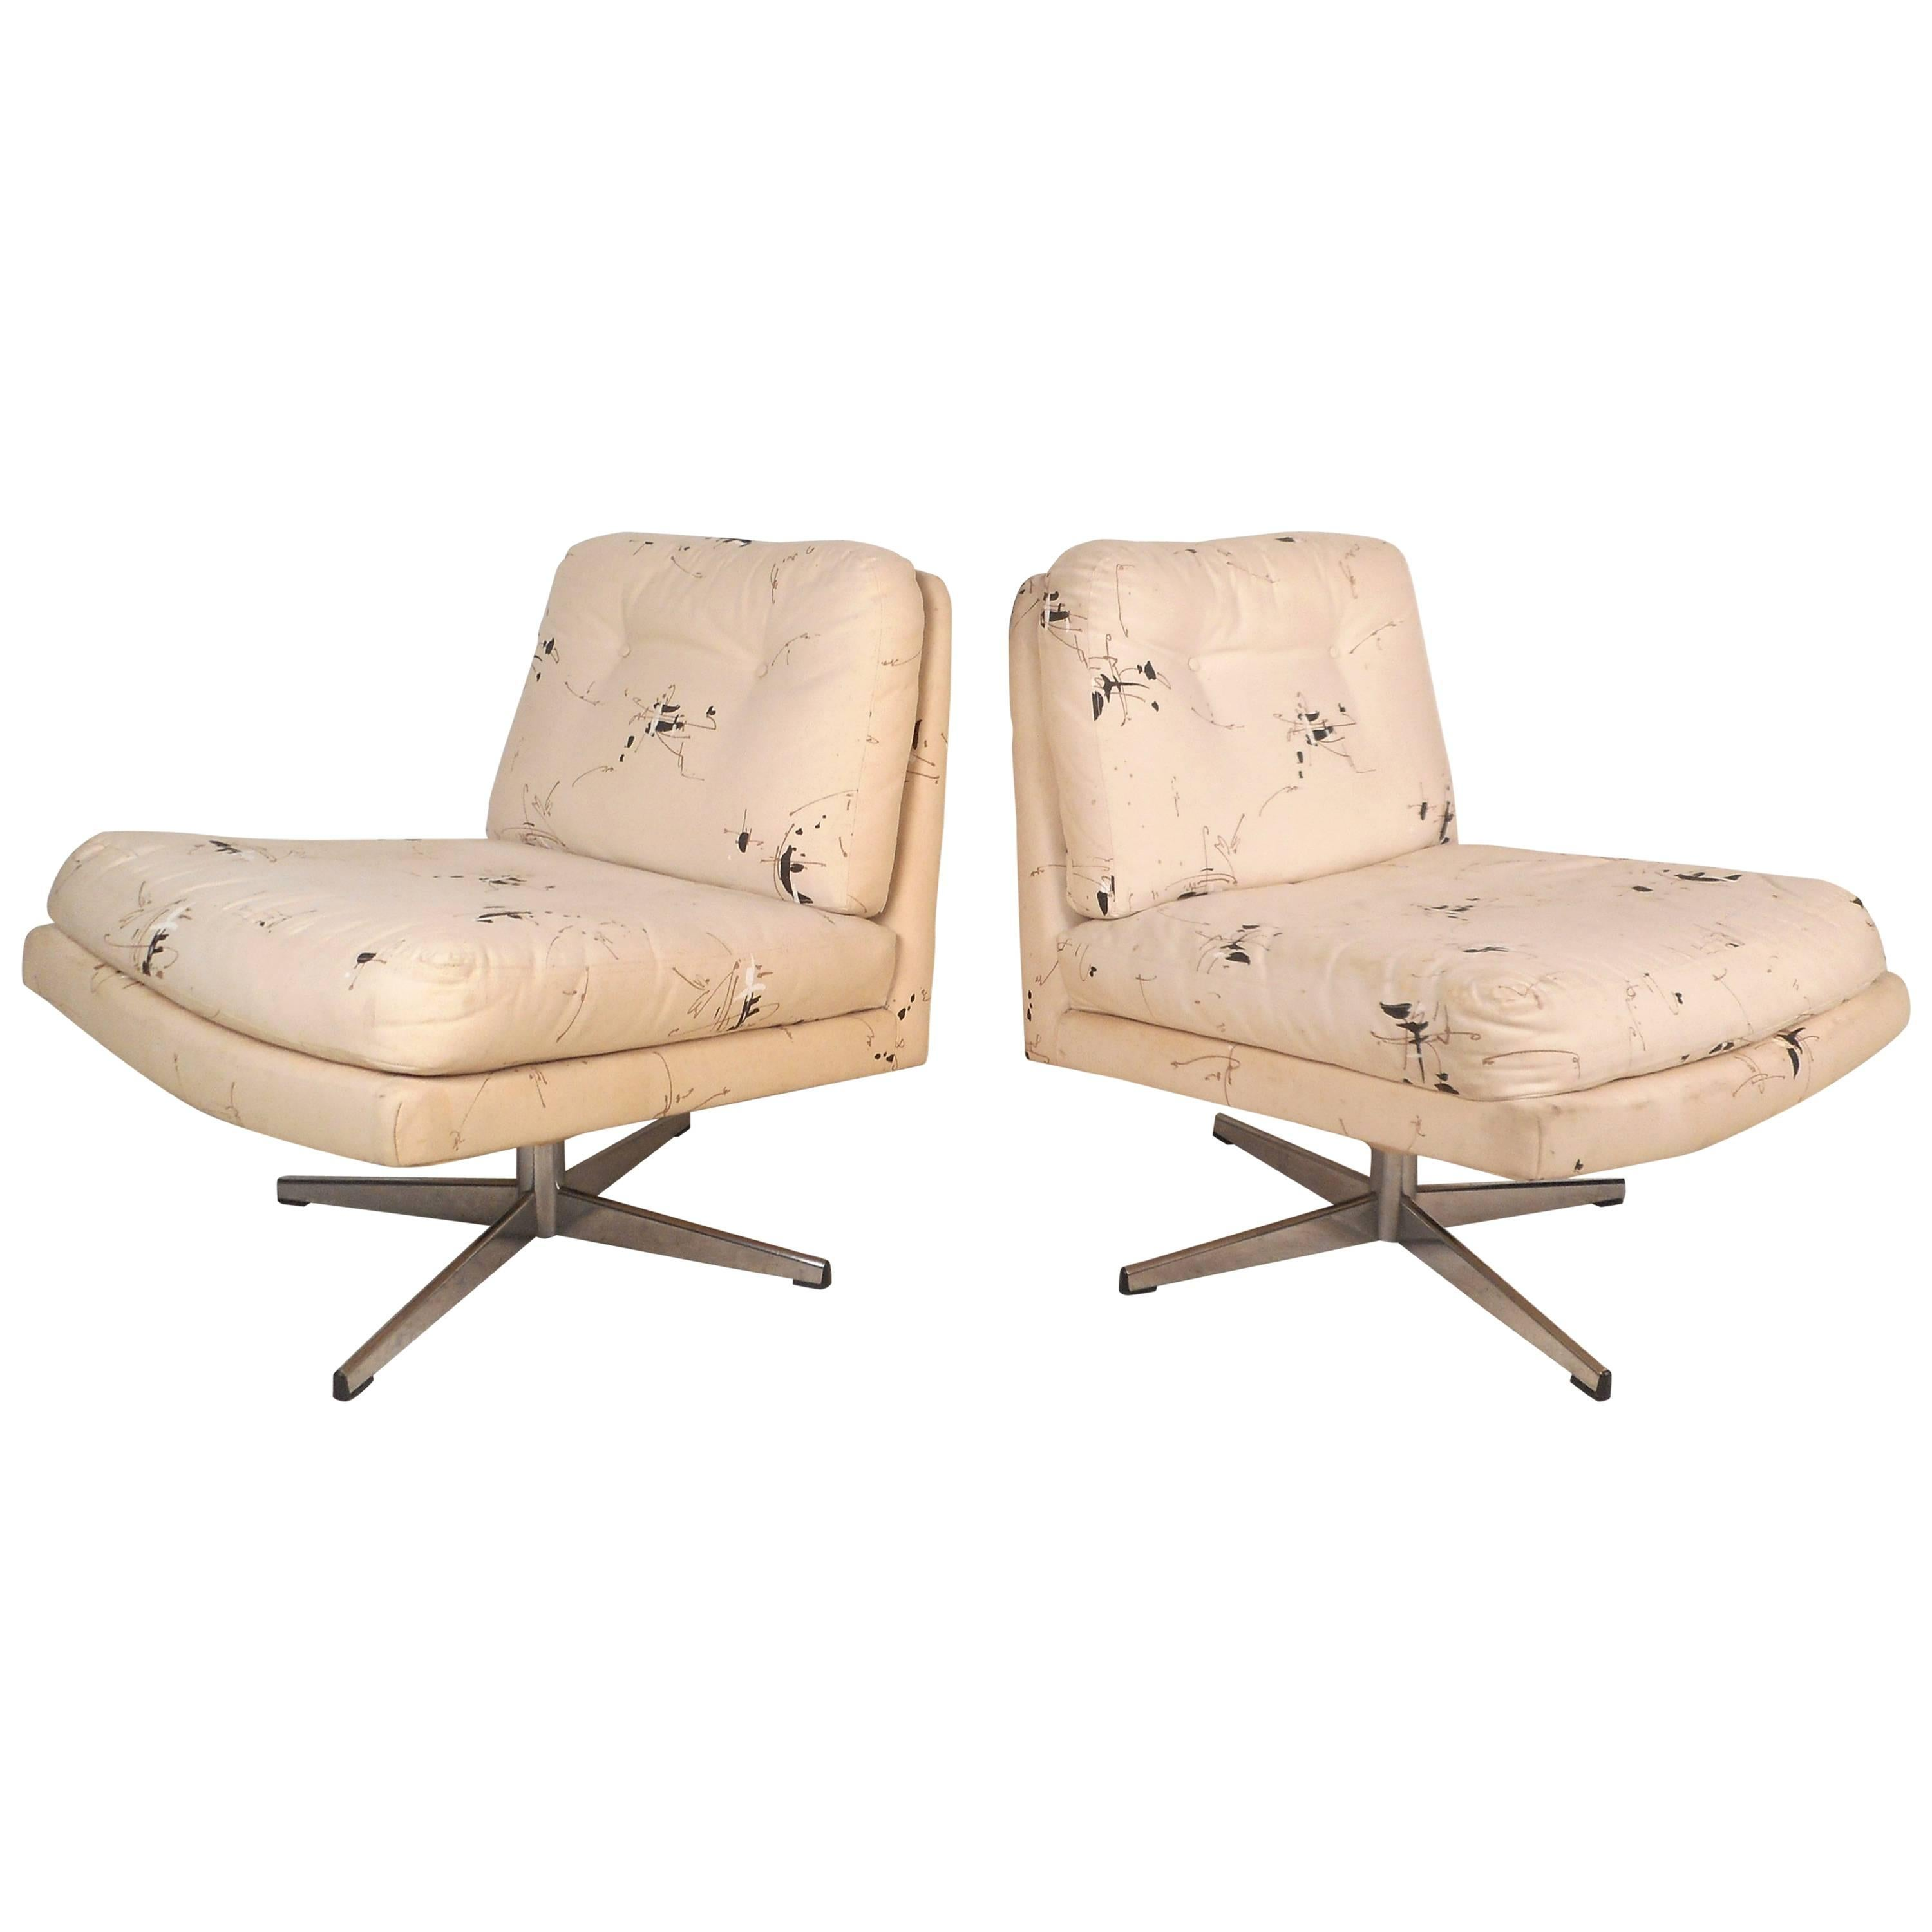 Mid-Century Modern Swivel Lounge Chairs in the Style of Milo Baughman